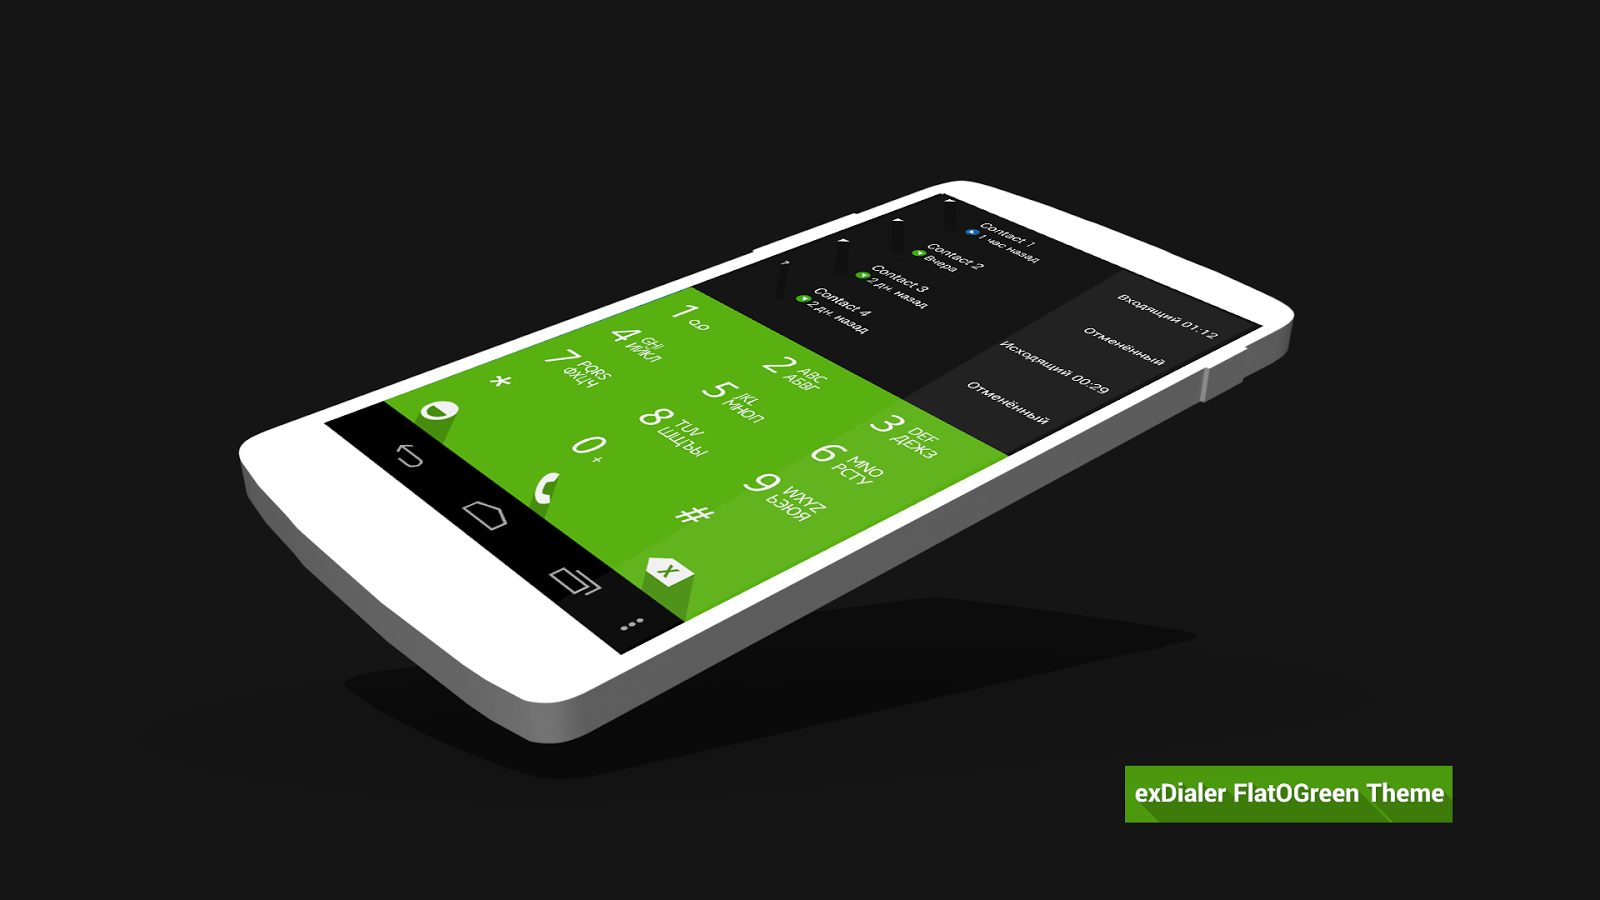 ExDialer Theme FlatOGreen - screenshot